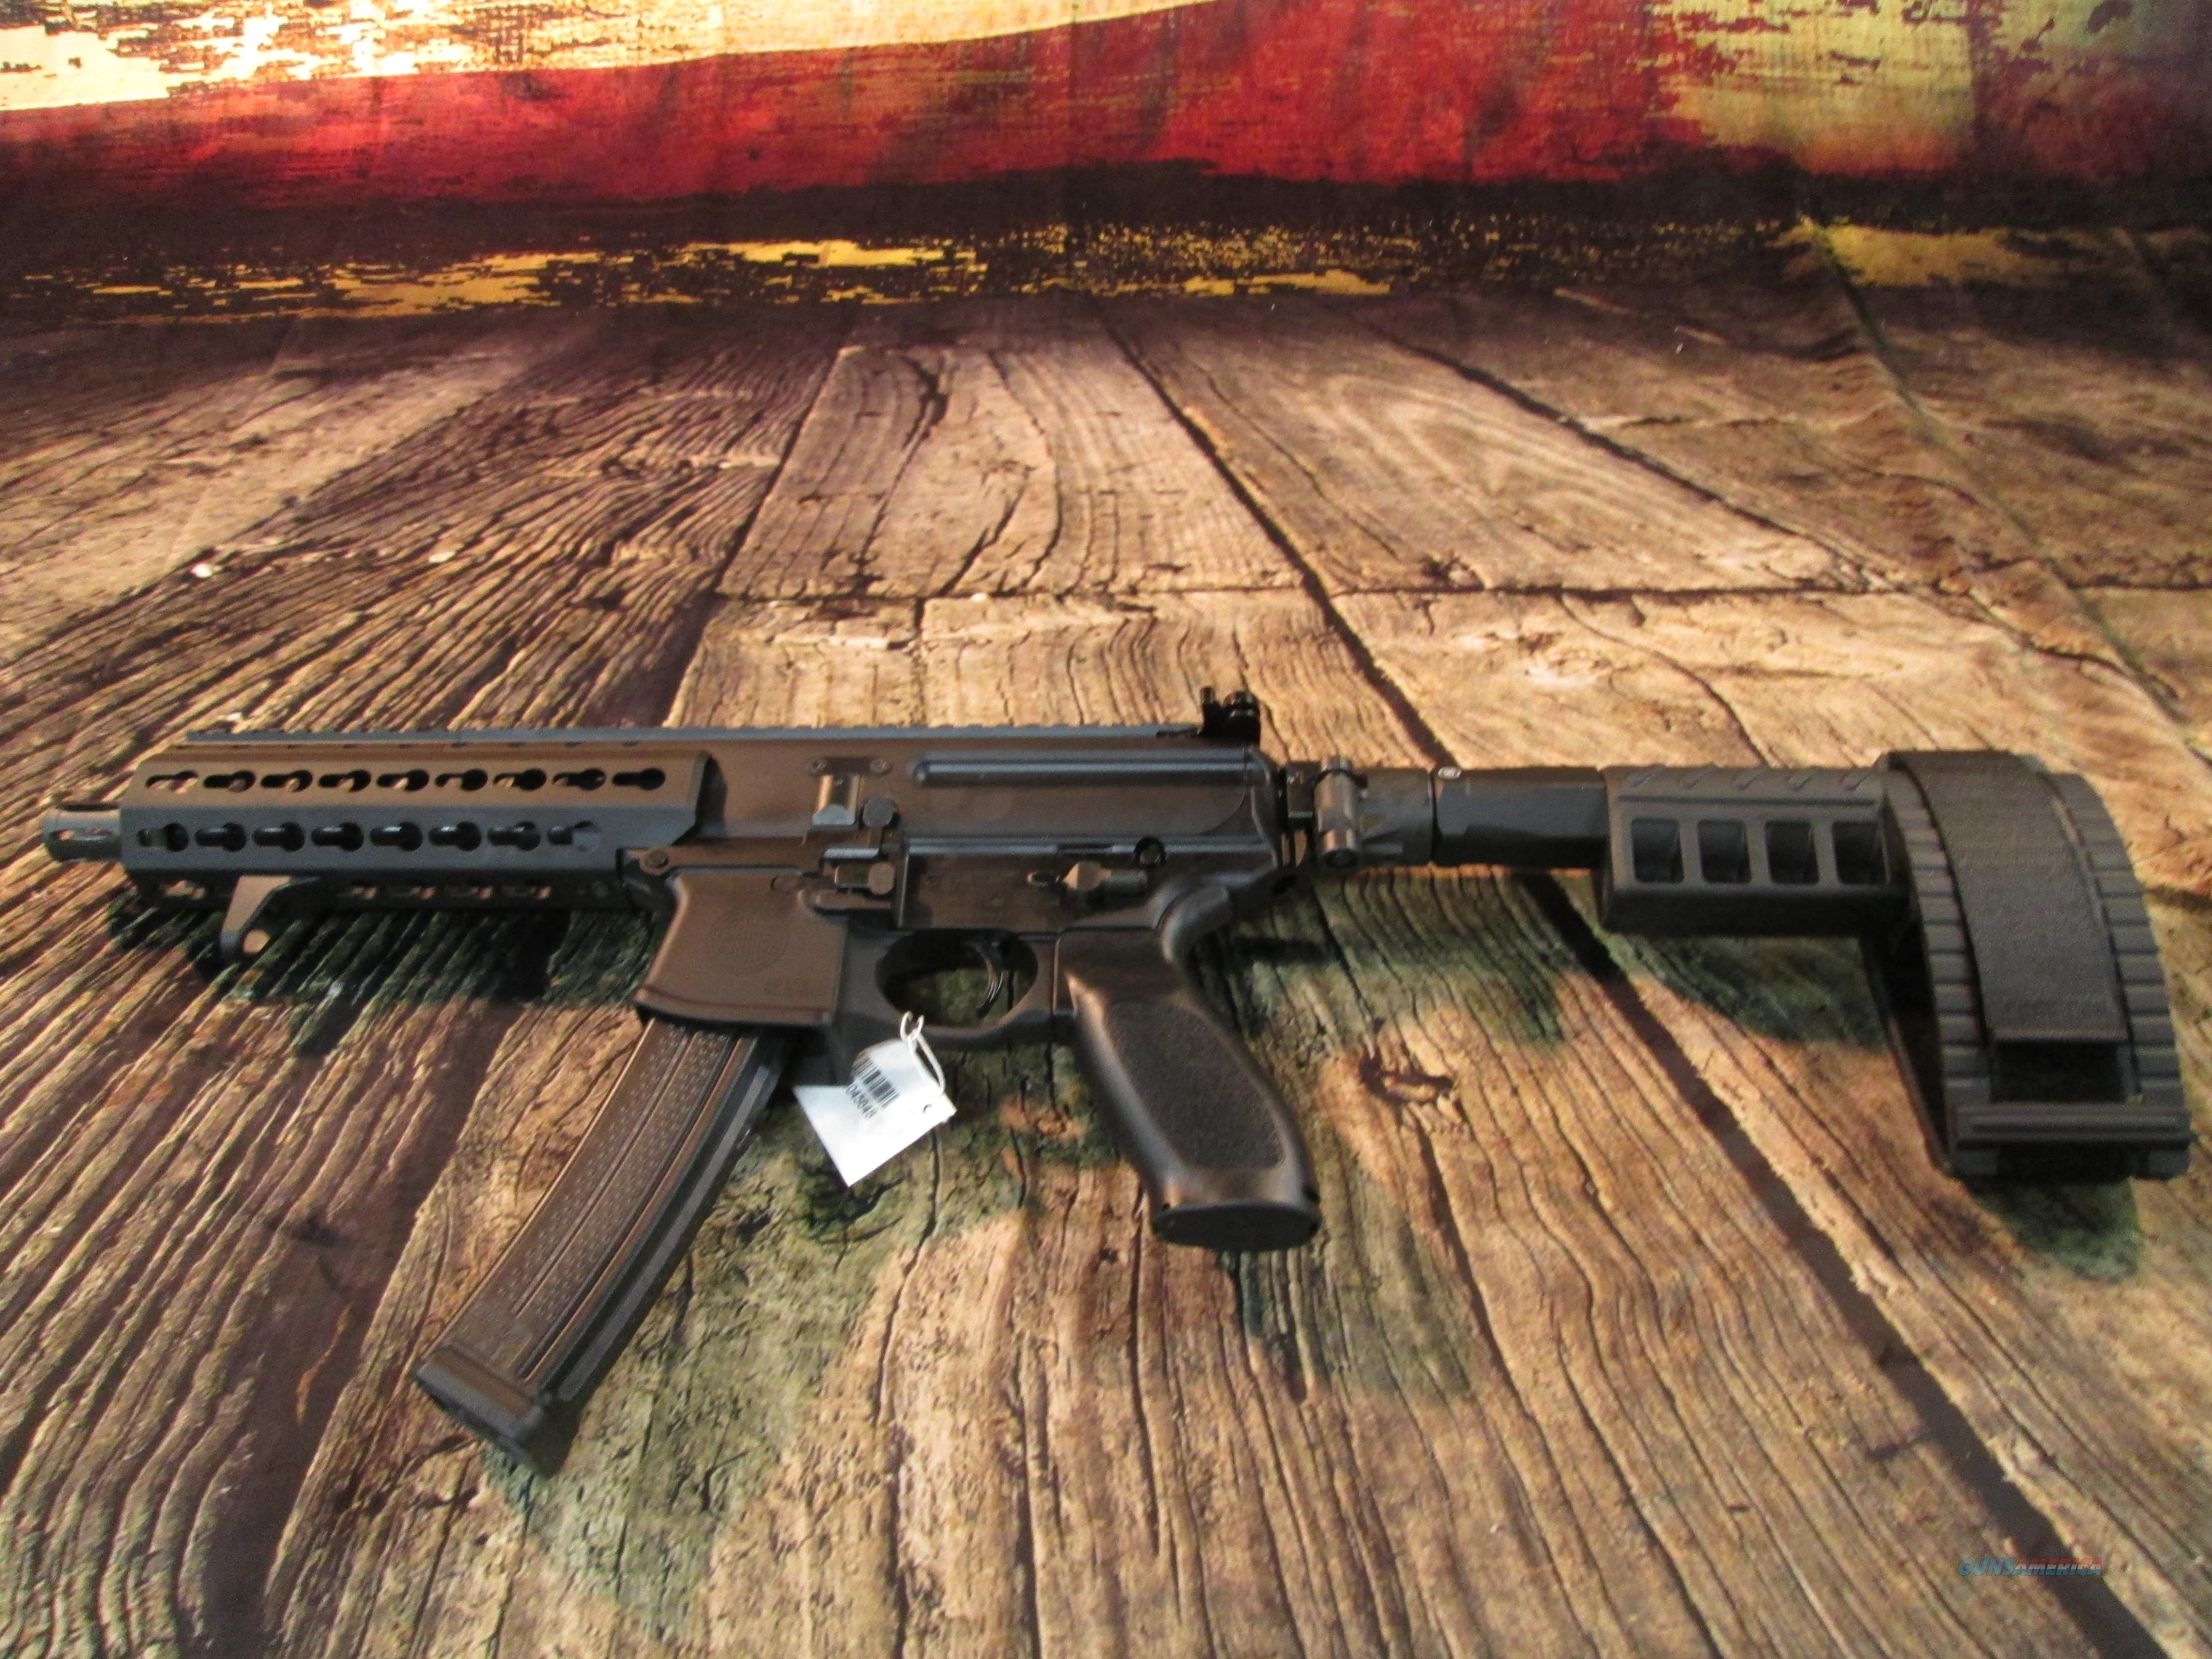 SIG SAUER MPX 9MM PISTOL W/ KEY MOD RAIL SYSTEM AND STABILIZING BRACE NEW (MPX-P-9-KM-PSB)  Guns > Pistols > Sig - Sauer/Sigarms Pistols > Other